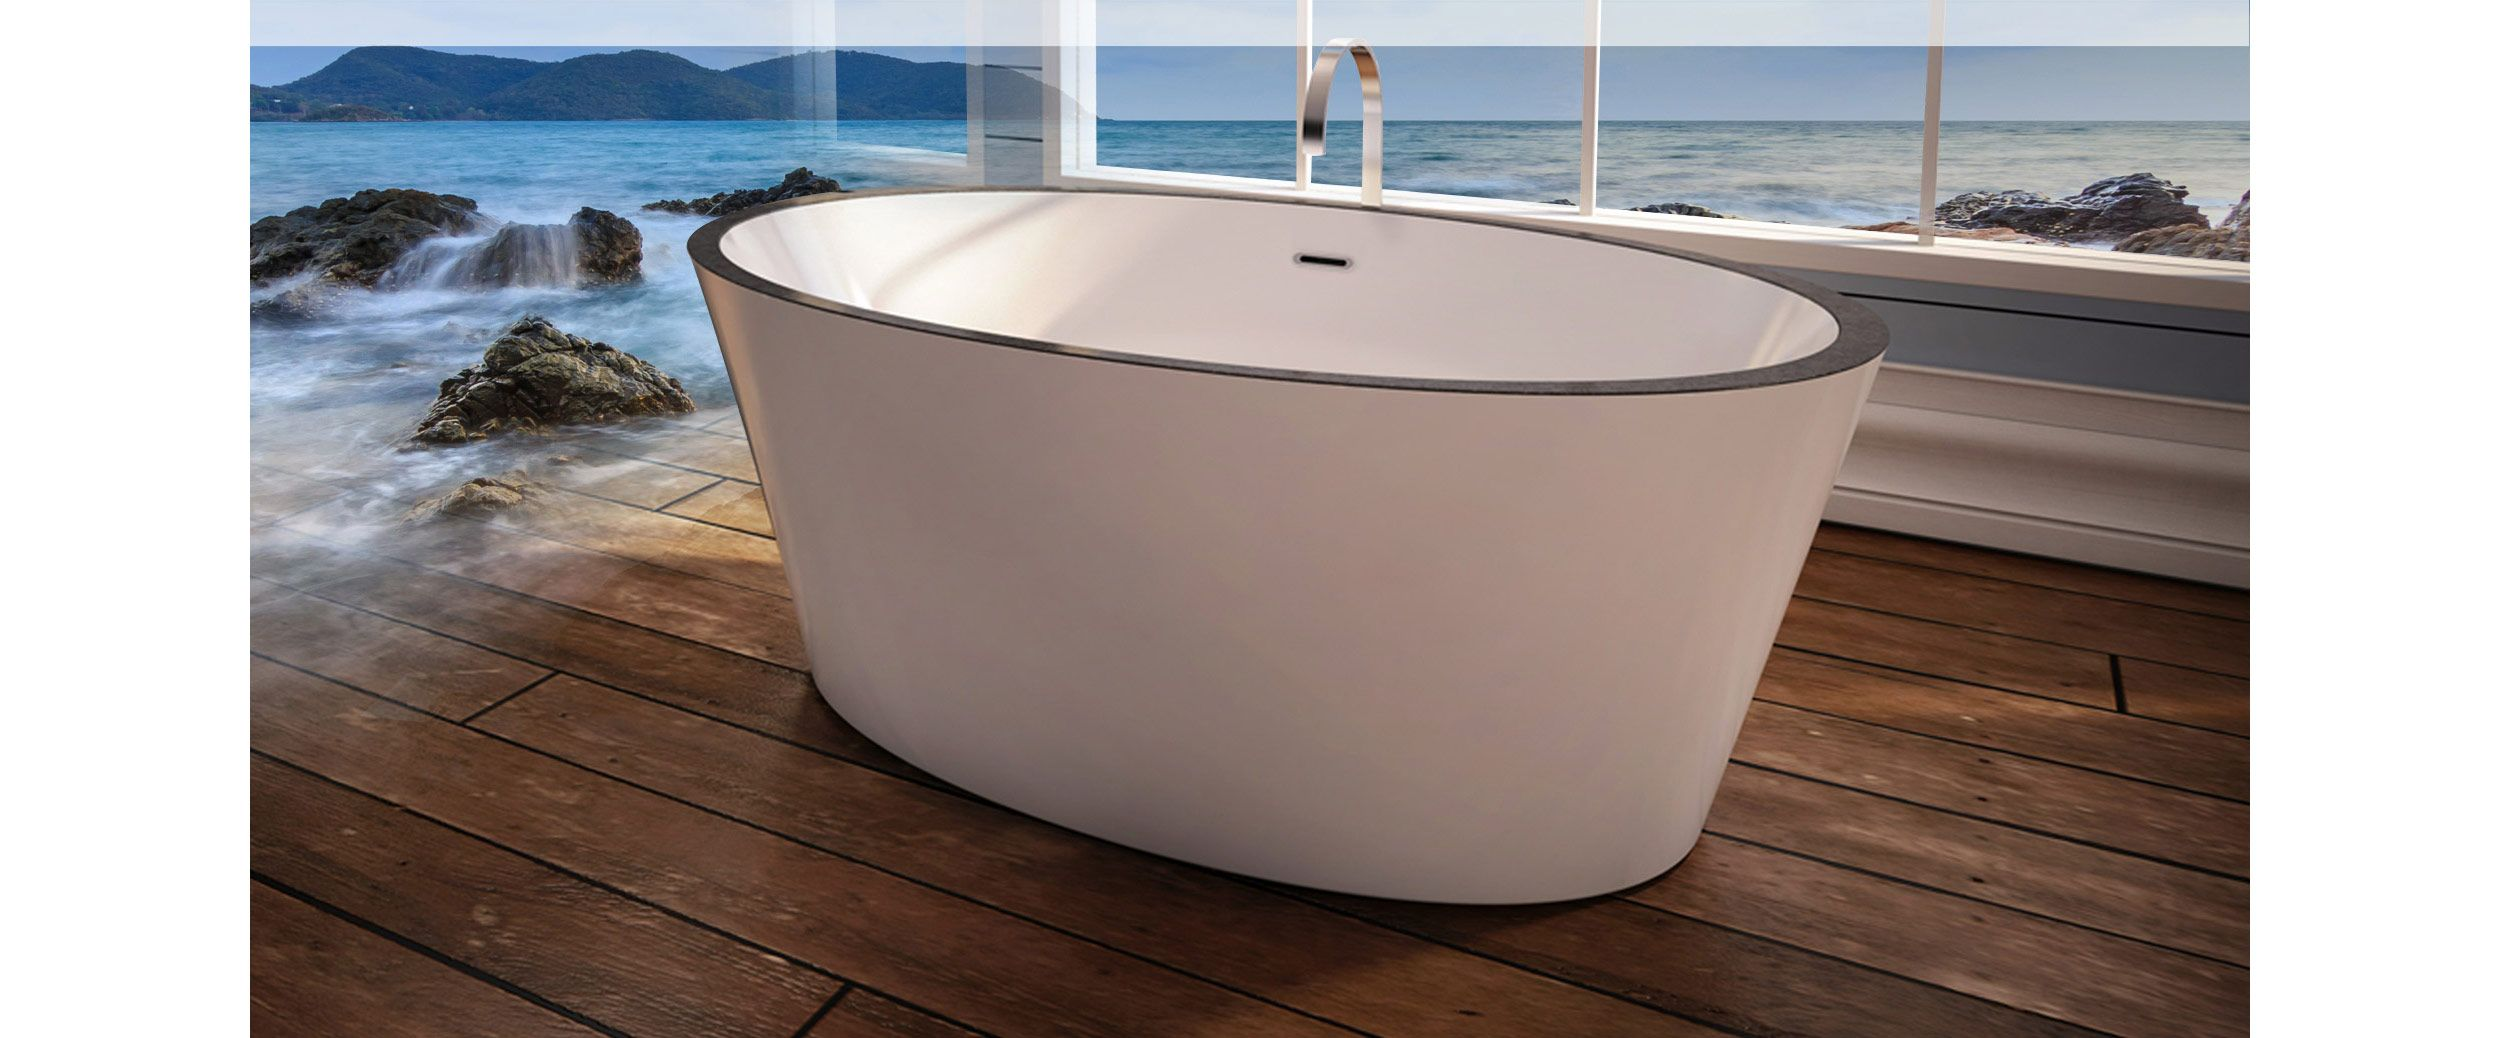 Bainultra - Air Jets Bath, Freestanding Bathtub, Therapeutic Baths And